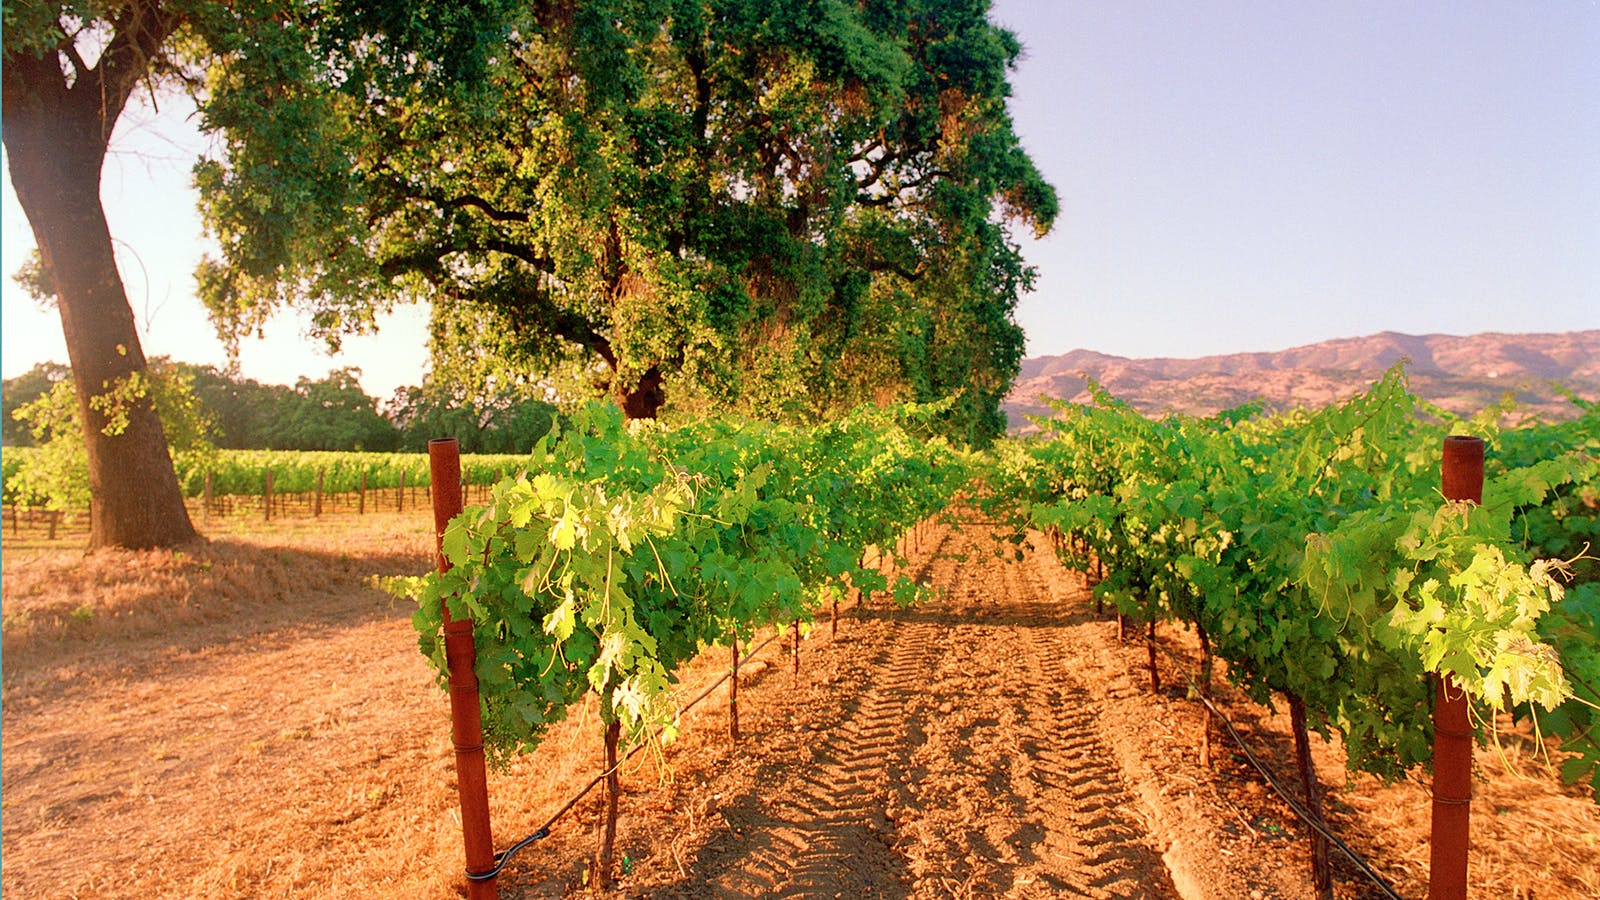 The Battle Over Napa's Hills Heads to Court